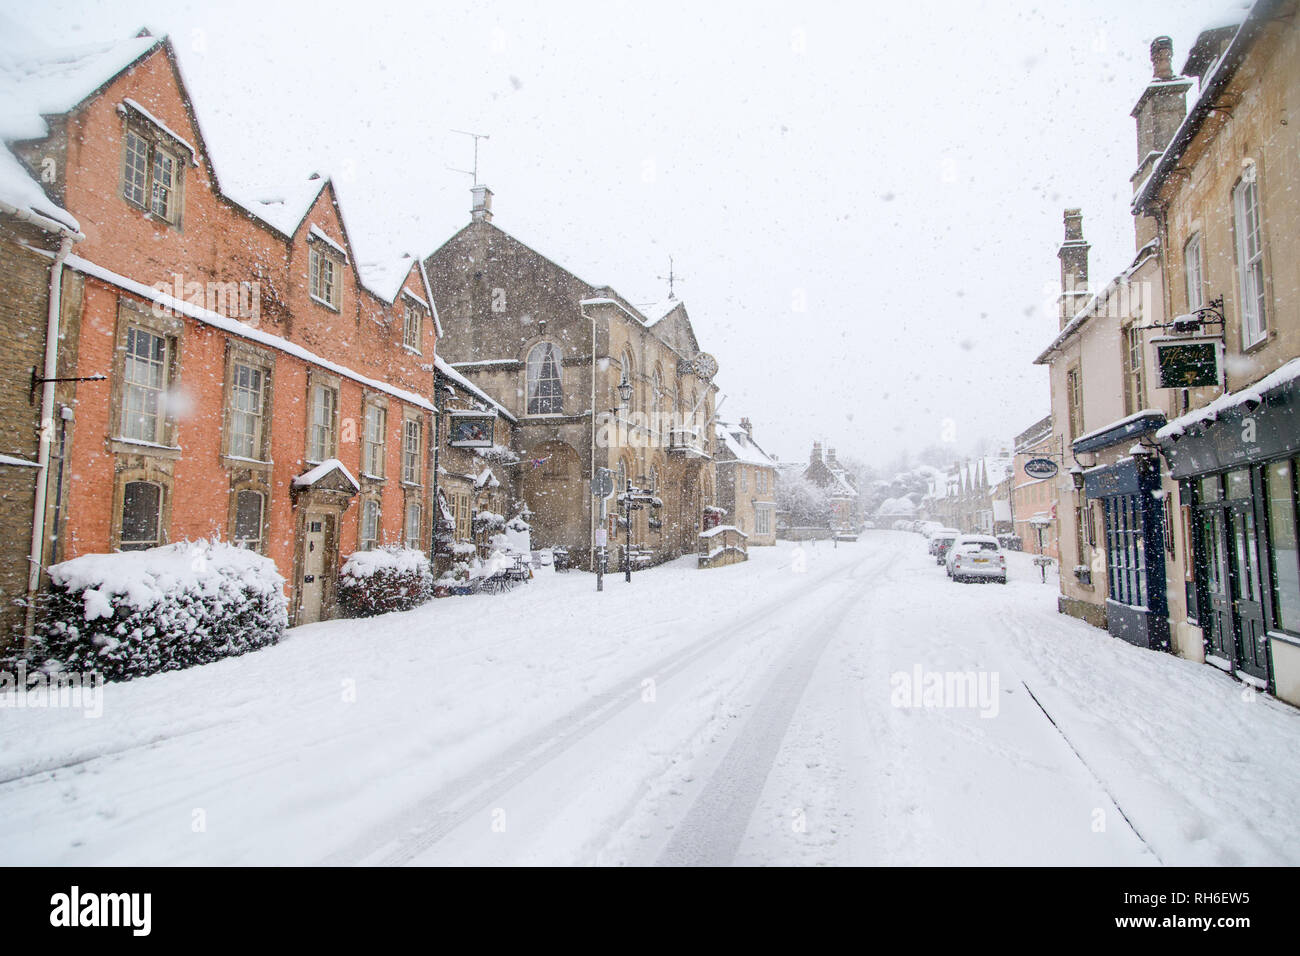 Corsham, Wiltshire, UK. 1st February, 2019. Heavy snowfall blankets the ancient town centre, home to the TV series Poldark and now a wintery scene which was forecast, though arrived late and much heavier than earlier predictions. Local residents brave the cold conditions as heavy snowfall continues to accumulate   throughout the day - with revised forecasts reporting sustained snow until 6pm this evening. The roads   are empty of cars, many schools and business remain closed whilst the wintery weather continues it's icy   grip in Wiltshire. Credit: Wayne Farrell/Alamy Live News Stock Photo